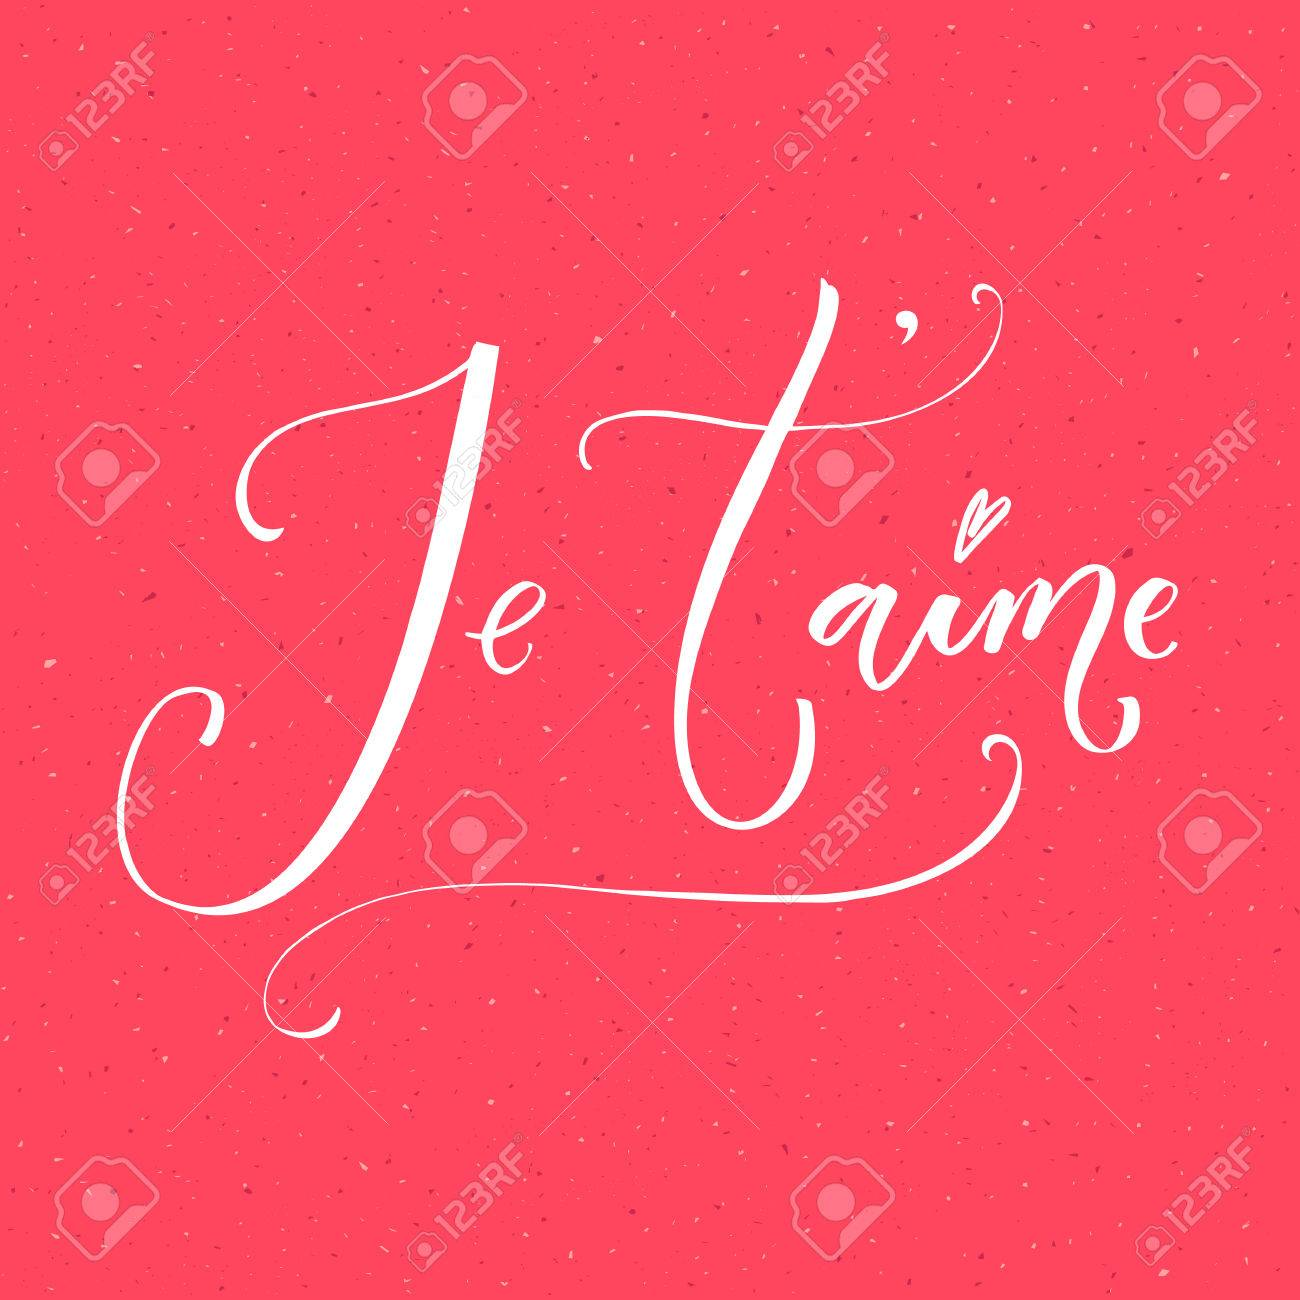 Romantic I Love You Quotes Jetaimei Love You In French Languageromantic Saying Modern